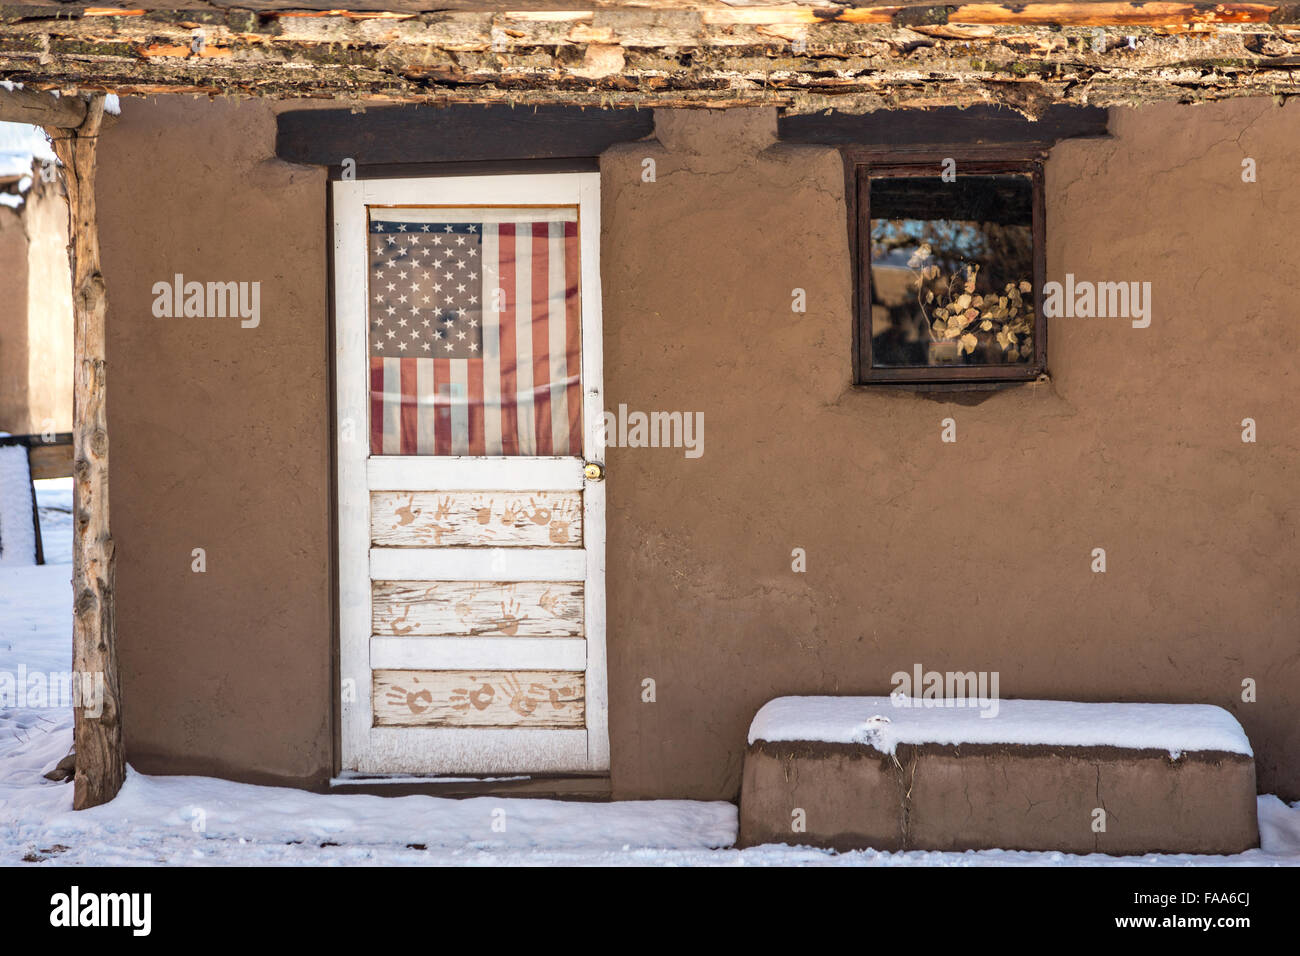 An American flag hangs from a door in an old adobe home at the ancient Native American Taos Pueblo outside Taos New Mexico. The pueblos are considered to ... & An American flag hangs from a door in an old adobe home at the Stock ...